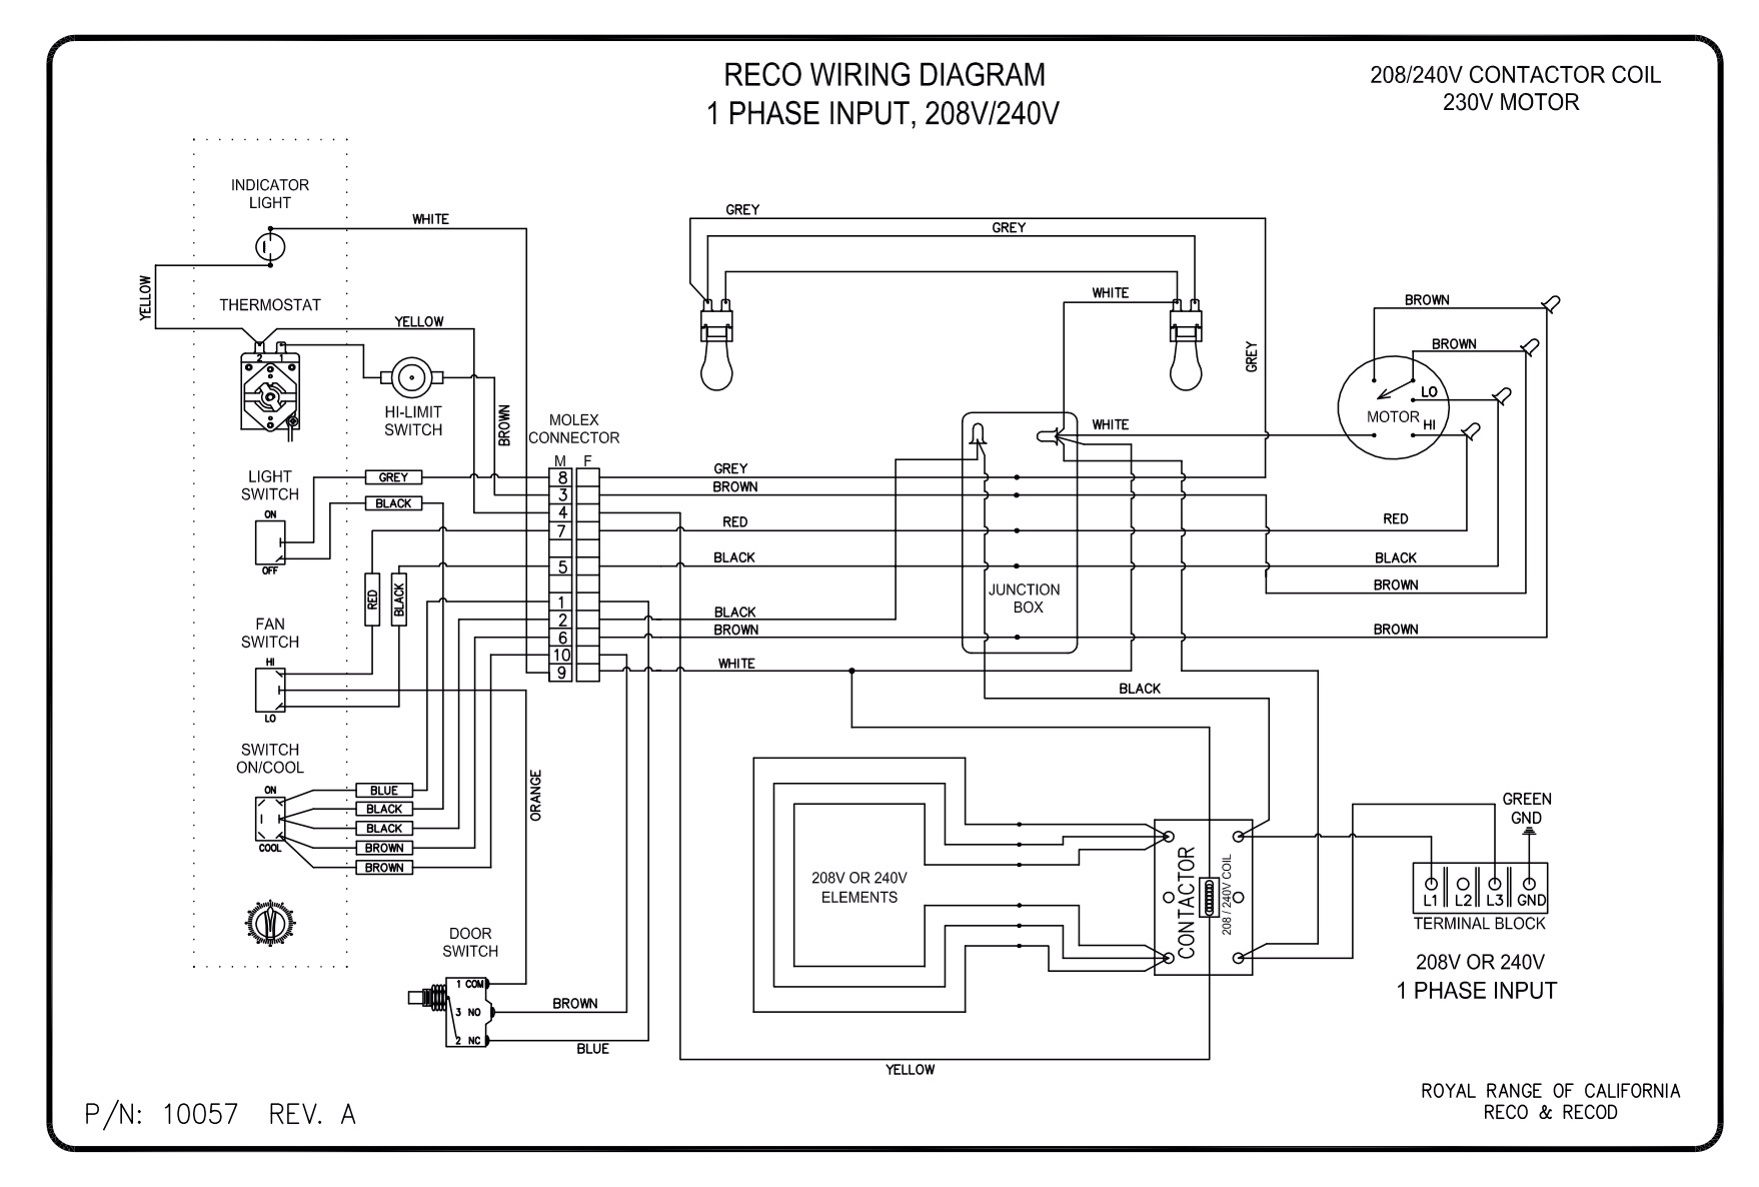 230v single phase hookup wiring diagram colors wiring diagrams royal range of california  wiring diagrams royal range of california